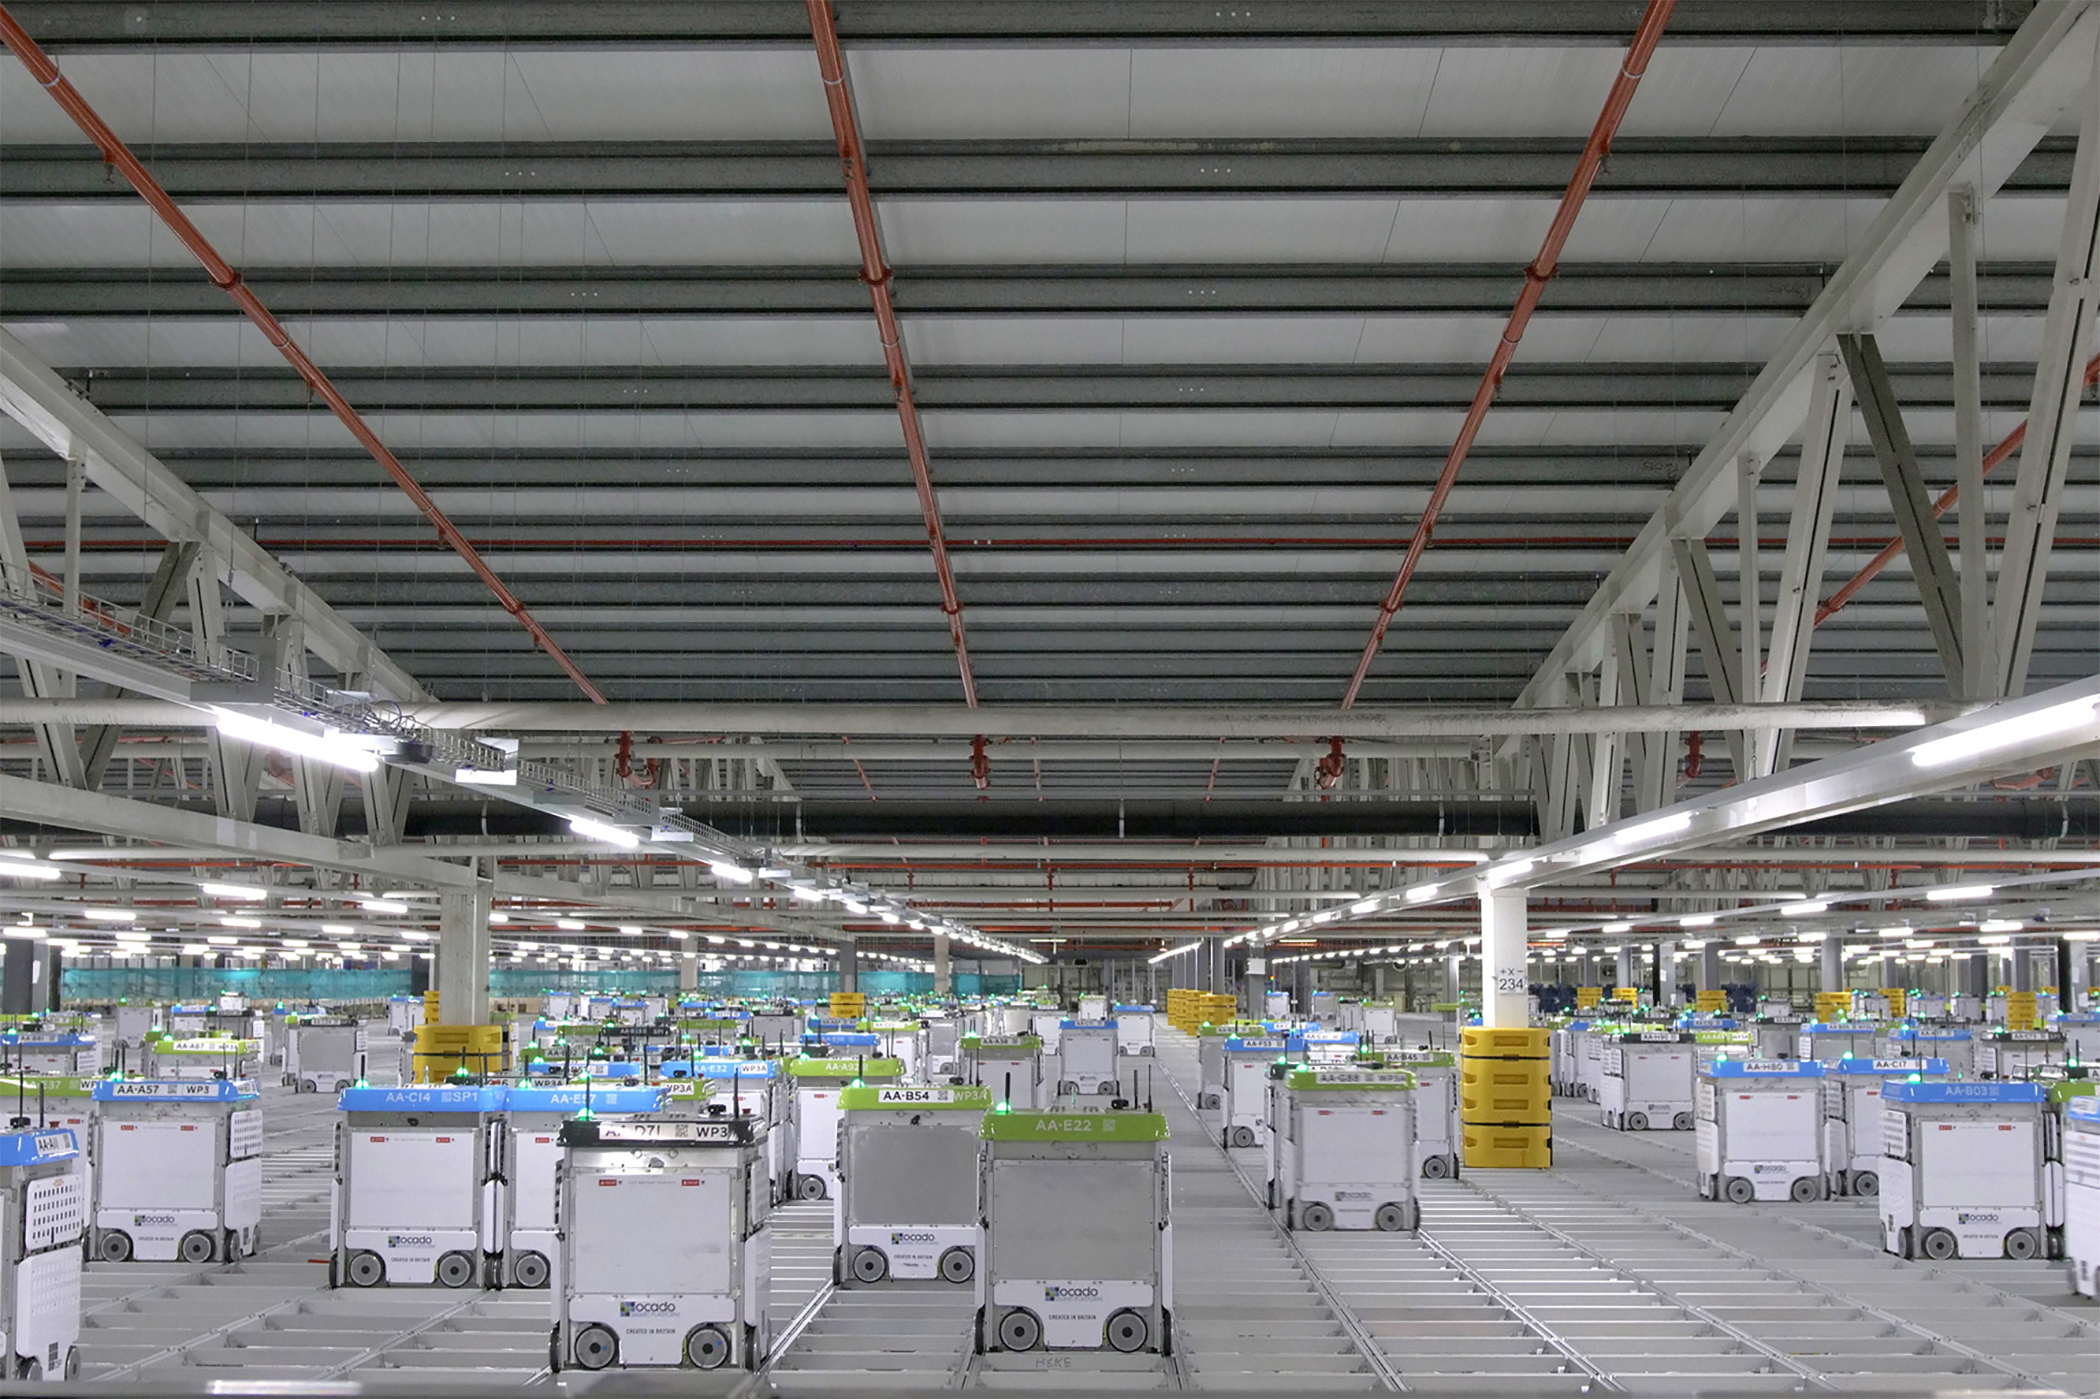 Robots will pack online orders at a planned Fry's distribution and fulfillment center in Phoenix. (Kroger)